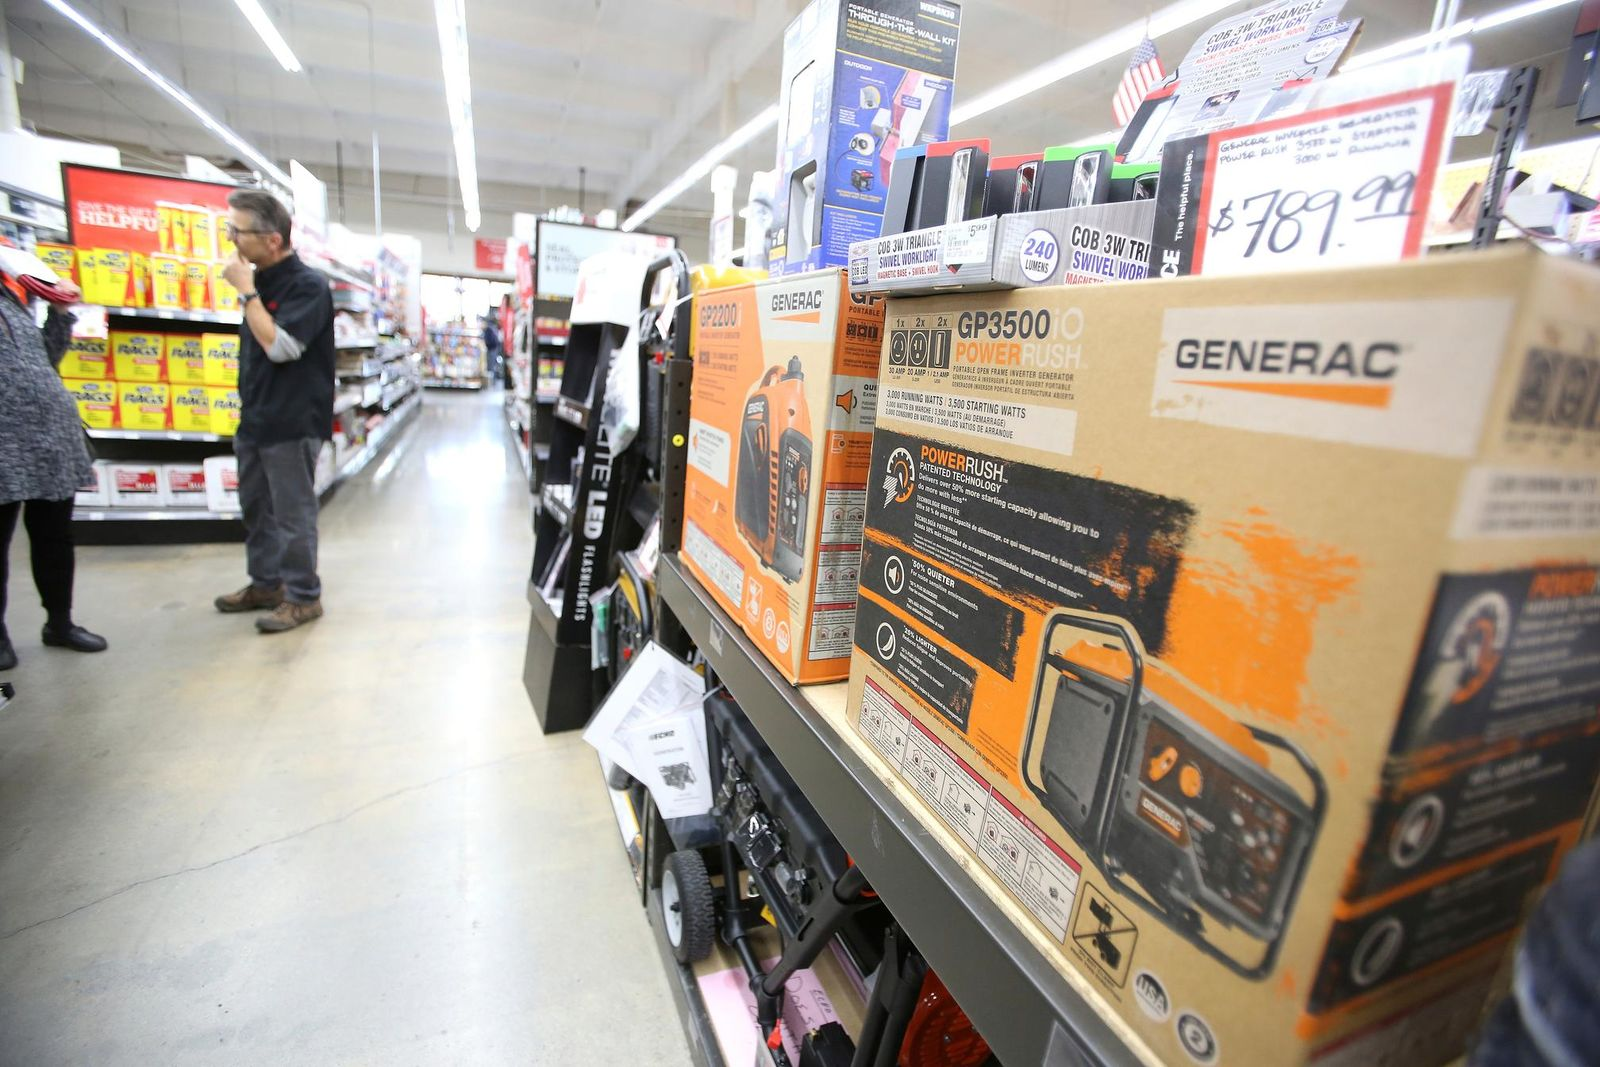 A shelf of Generac generators sit on the shelf while potential customers ask questions about them Tuesday afternoon at B&C Ace Home & Garden hardware store in Grass Valley's Glenbrook Basin. (Elias Funez/The Union via AP)